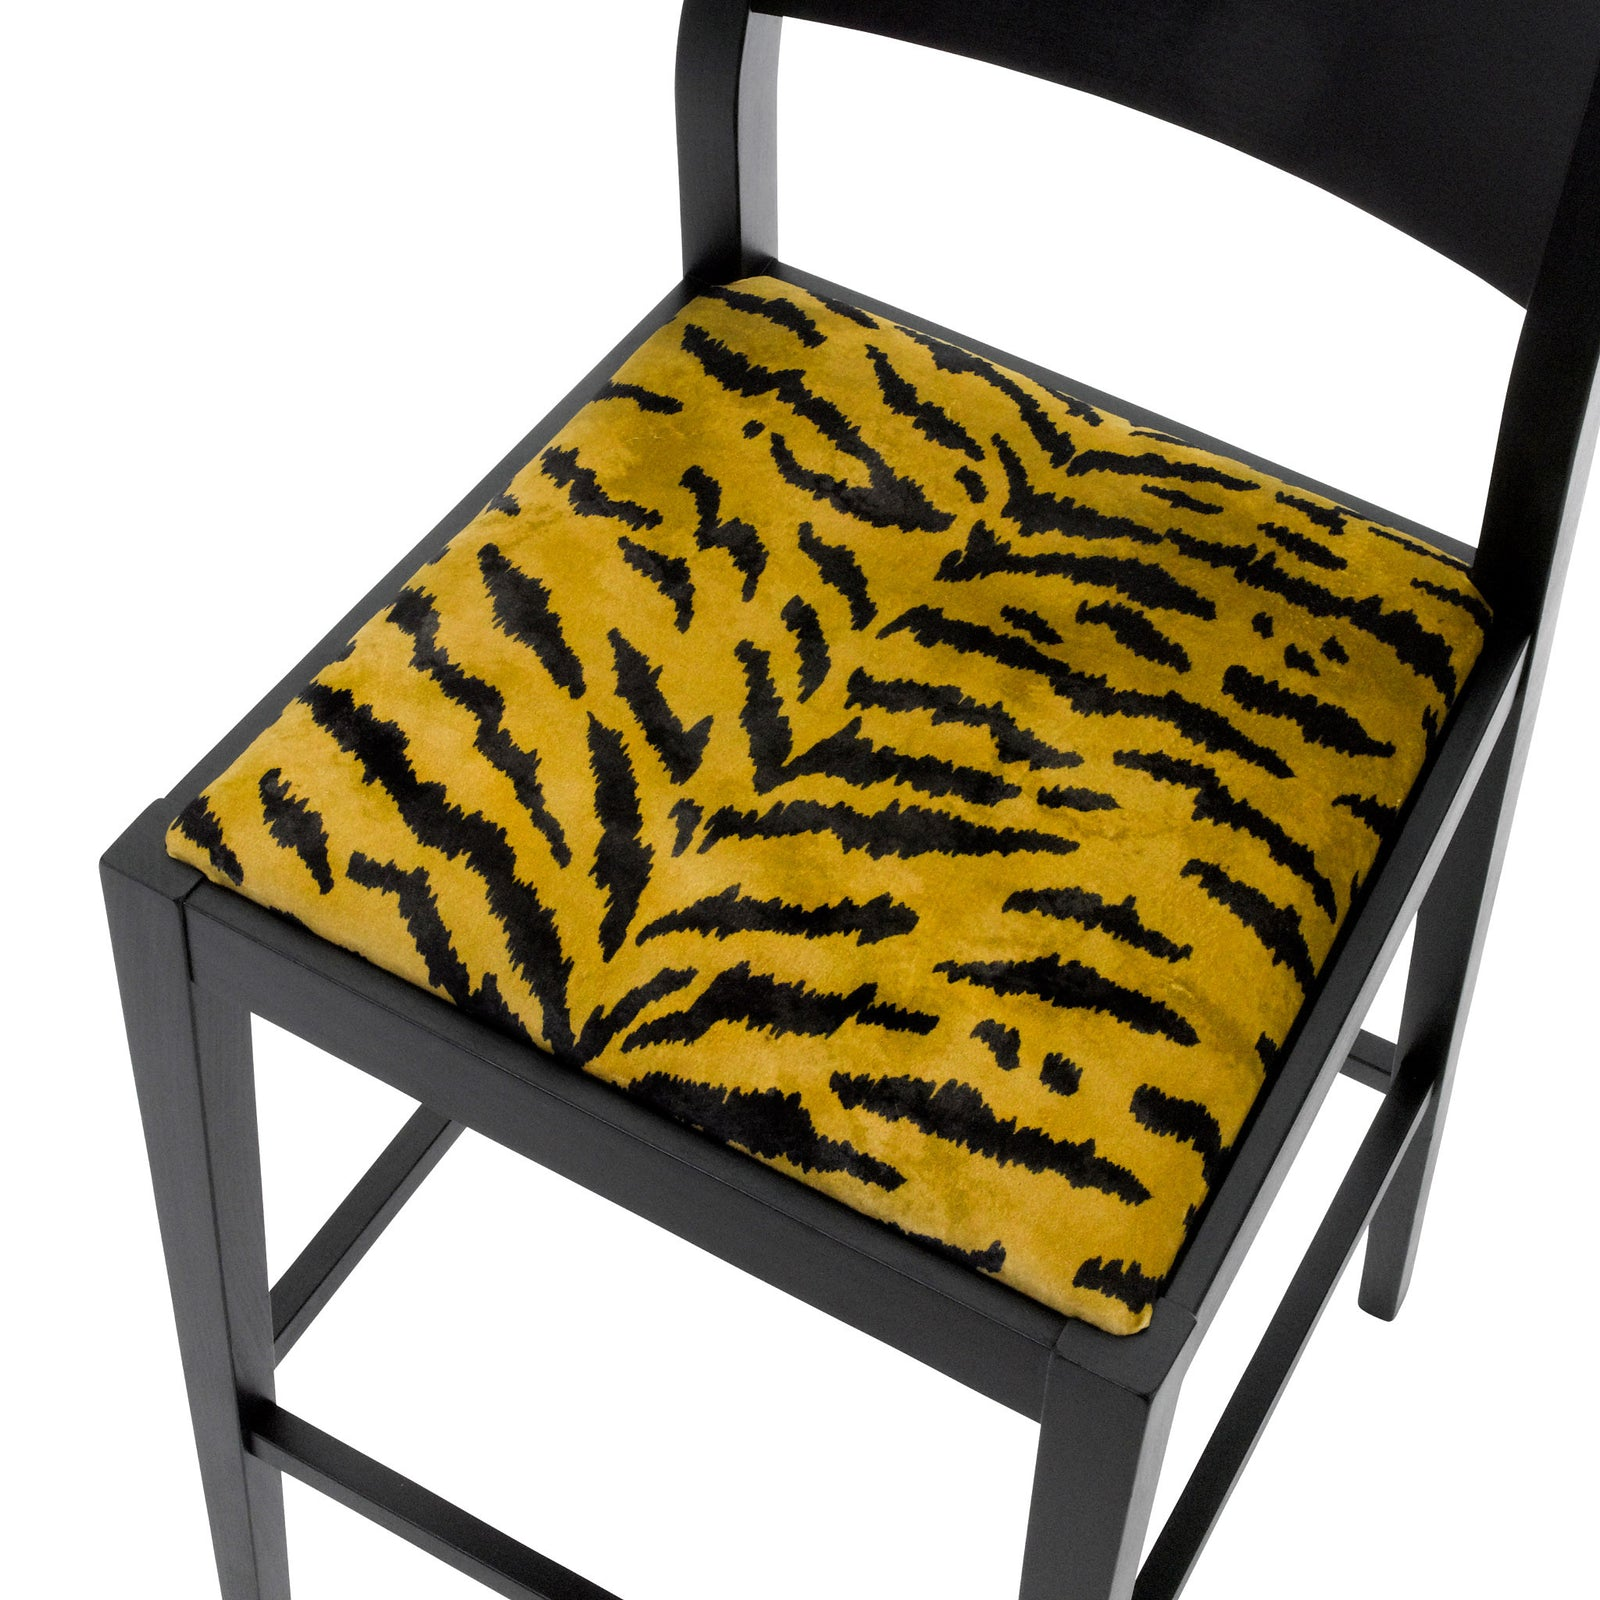 Seat view of the the Jack designer bar stool upholstered with the tigre design from the House of Hackney on luxury British velvet and silk finished in Jack black eggshell.